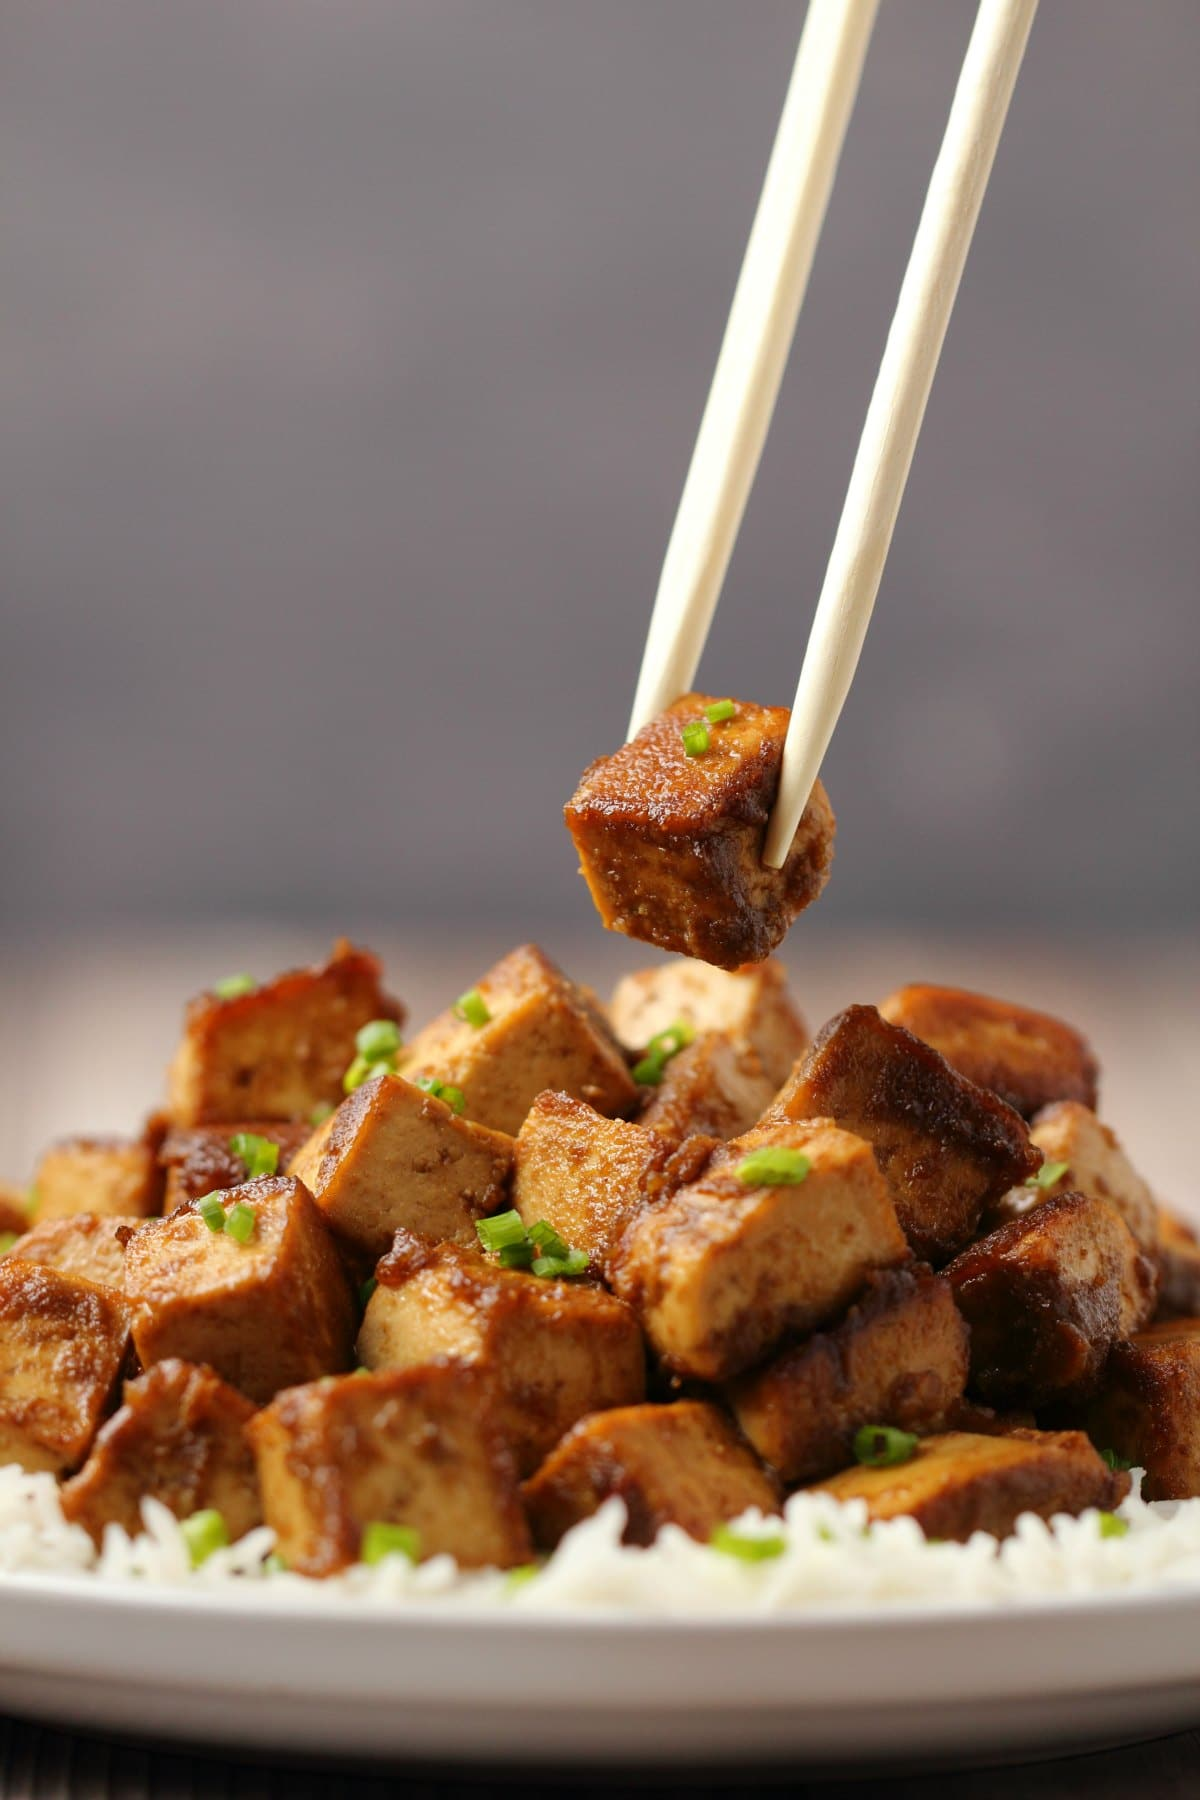 Marinated tofu topped with chopped chives on a bed of rice with chopsticks.